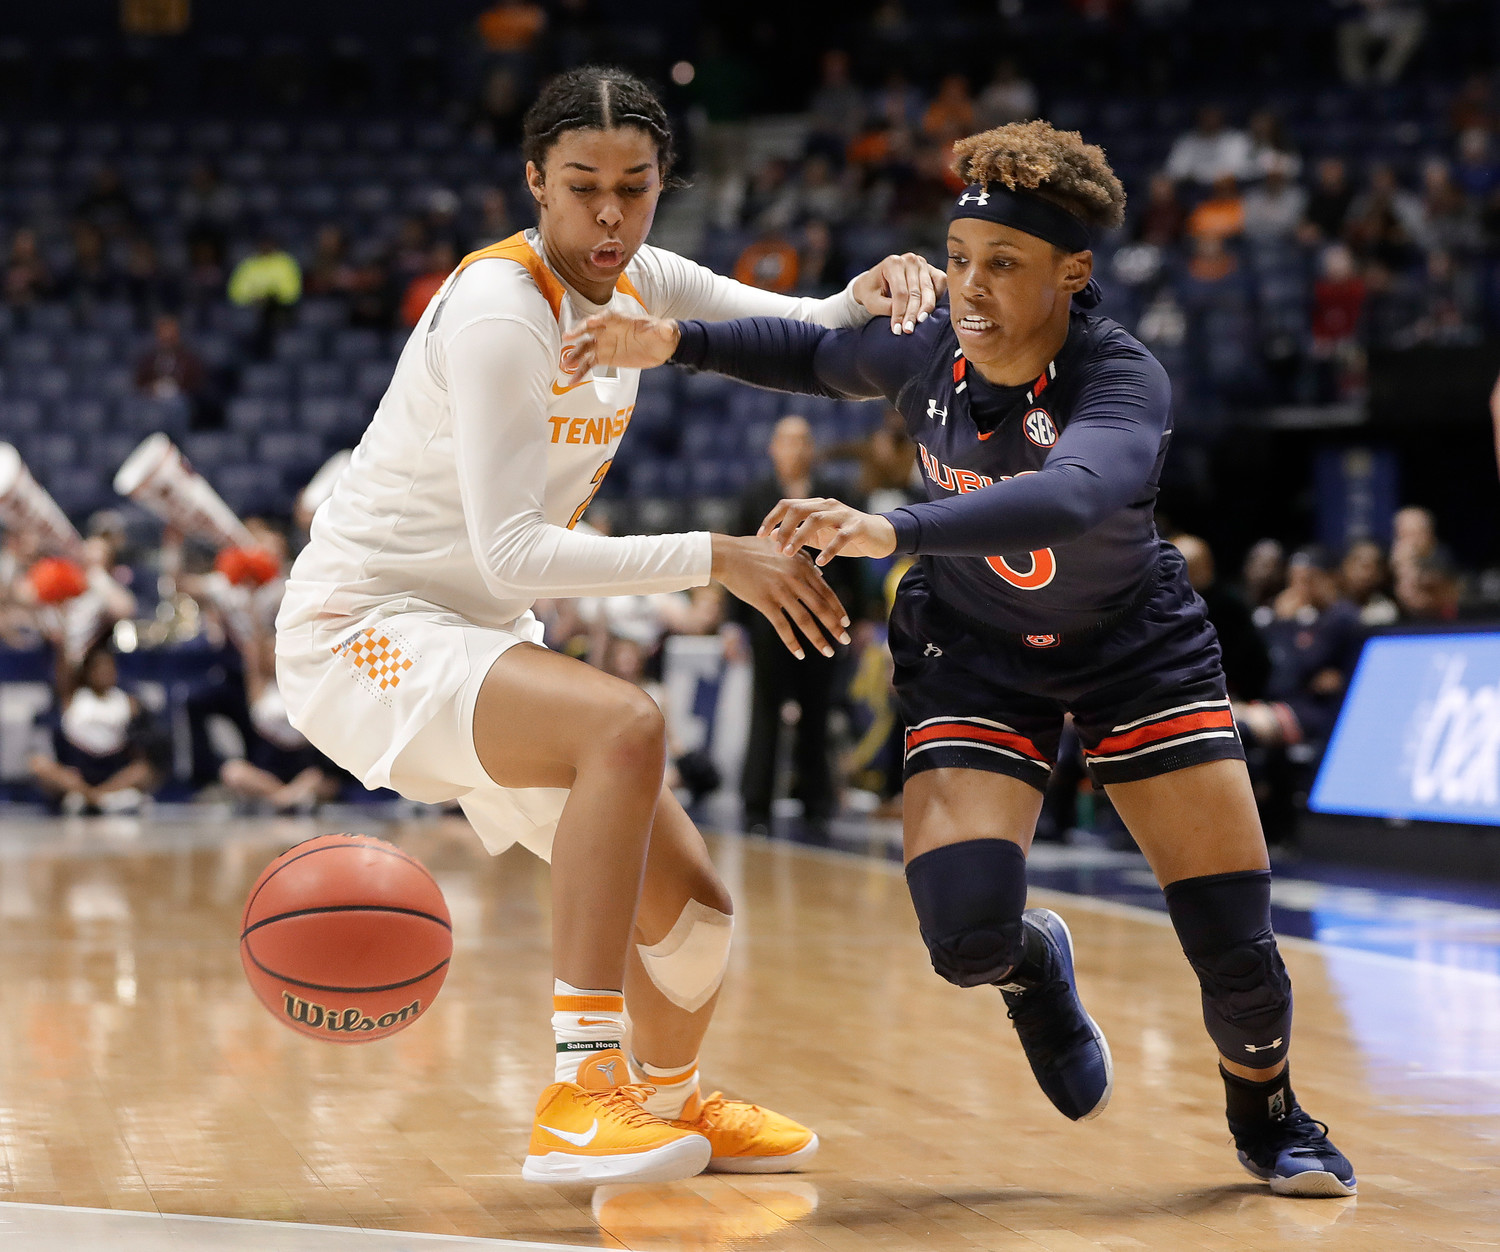 Lady Vols fall 73-62 to SC in SEC tournament quarterfinals